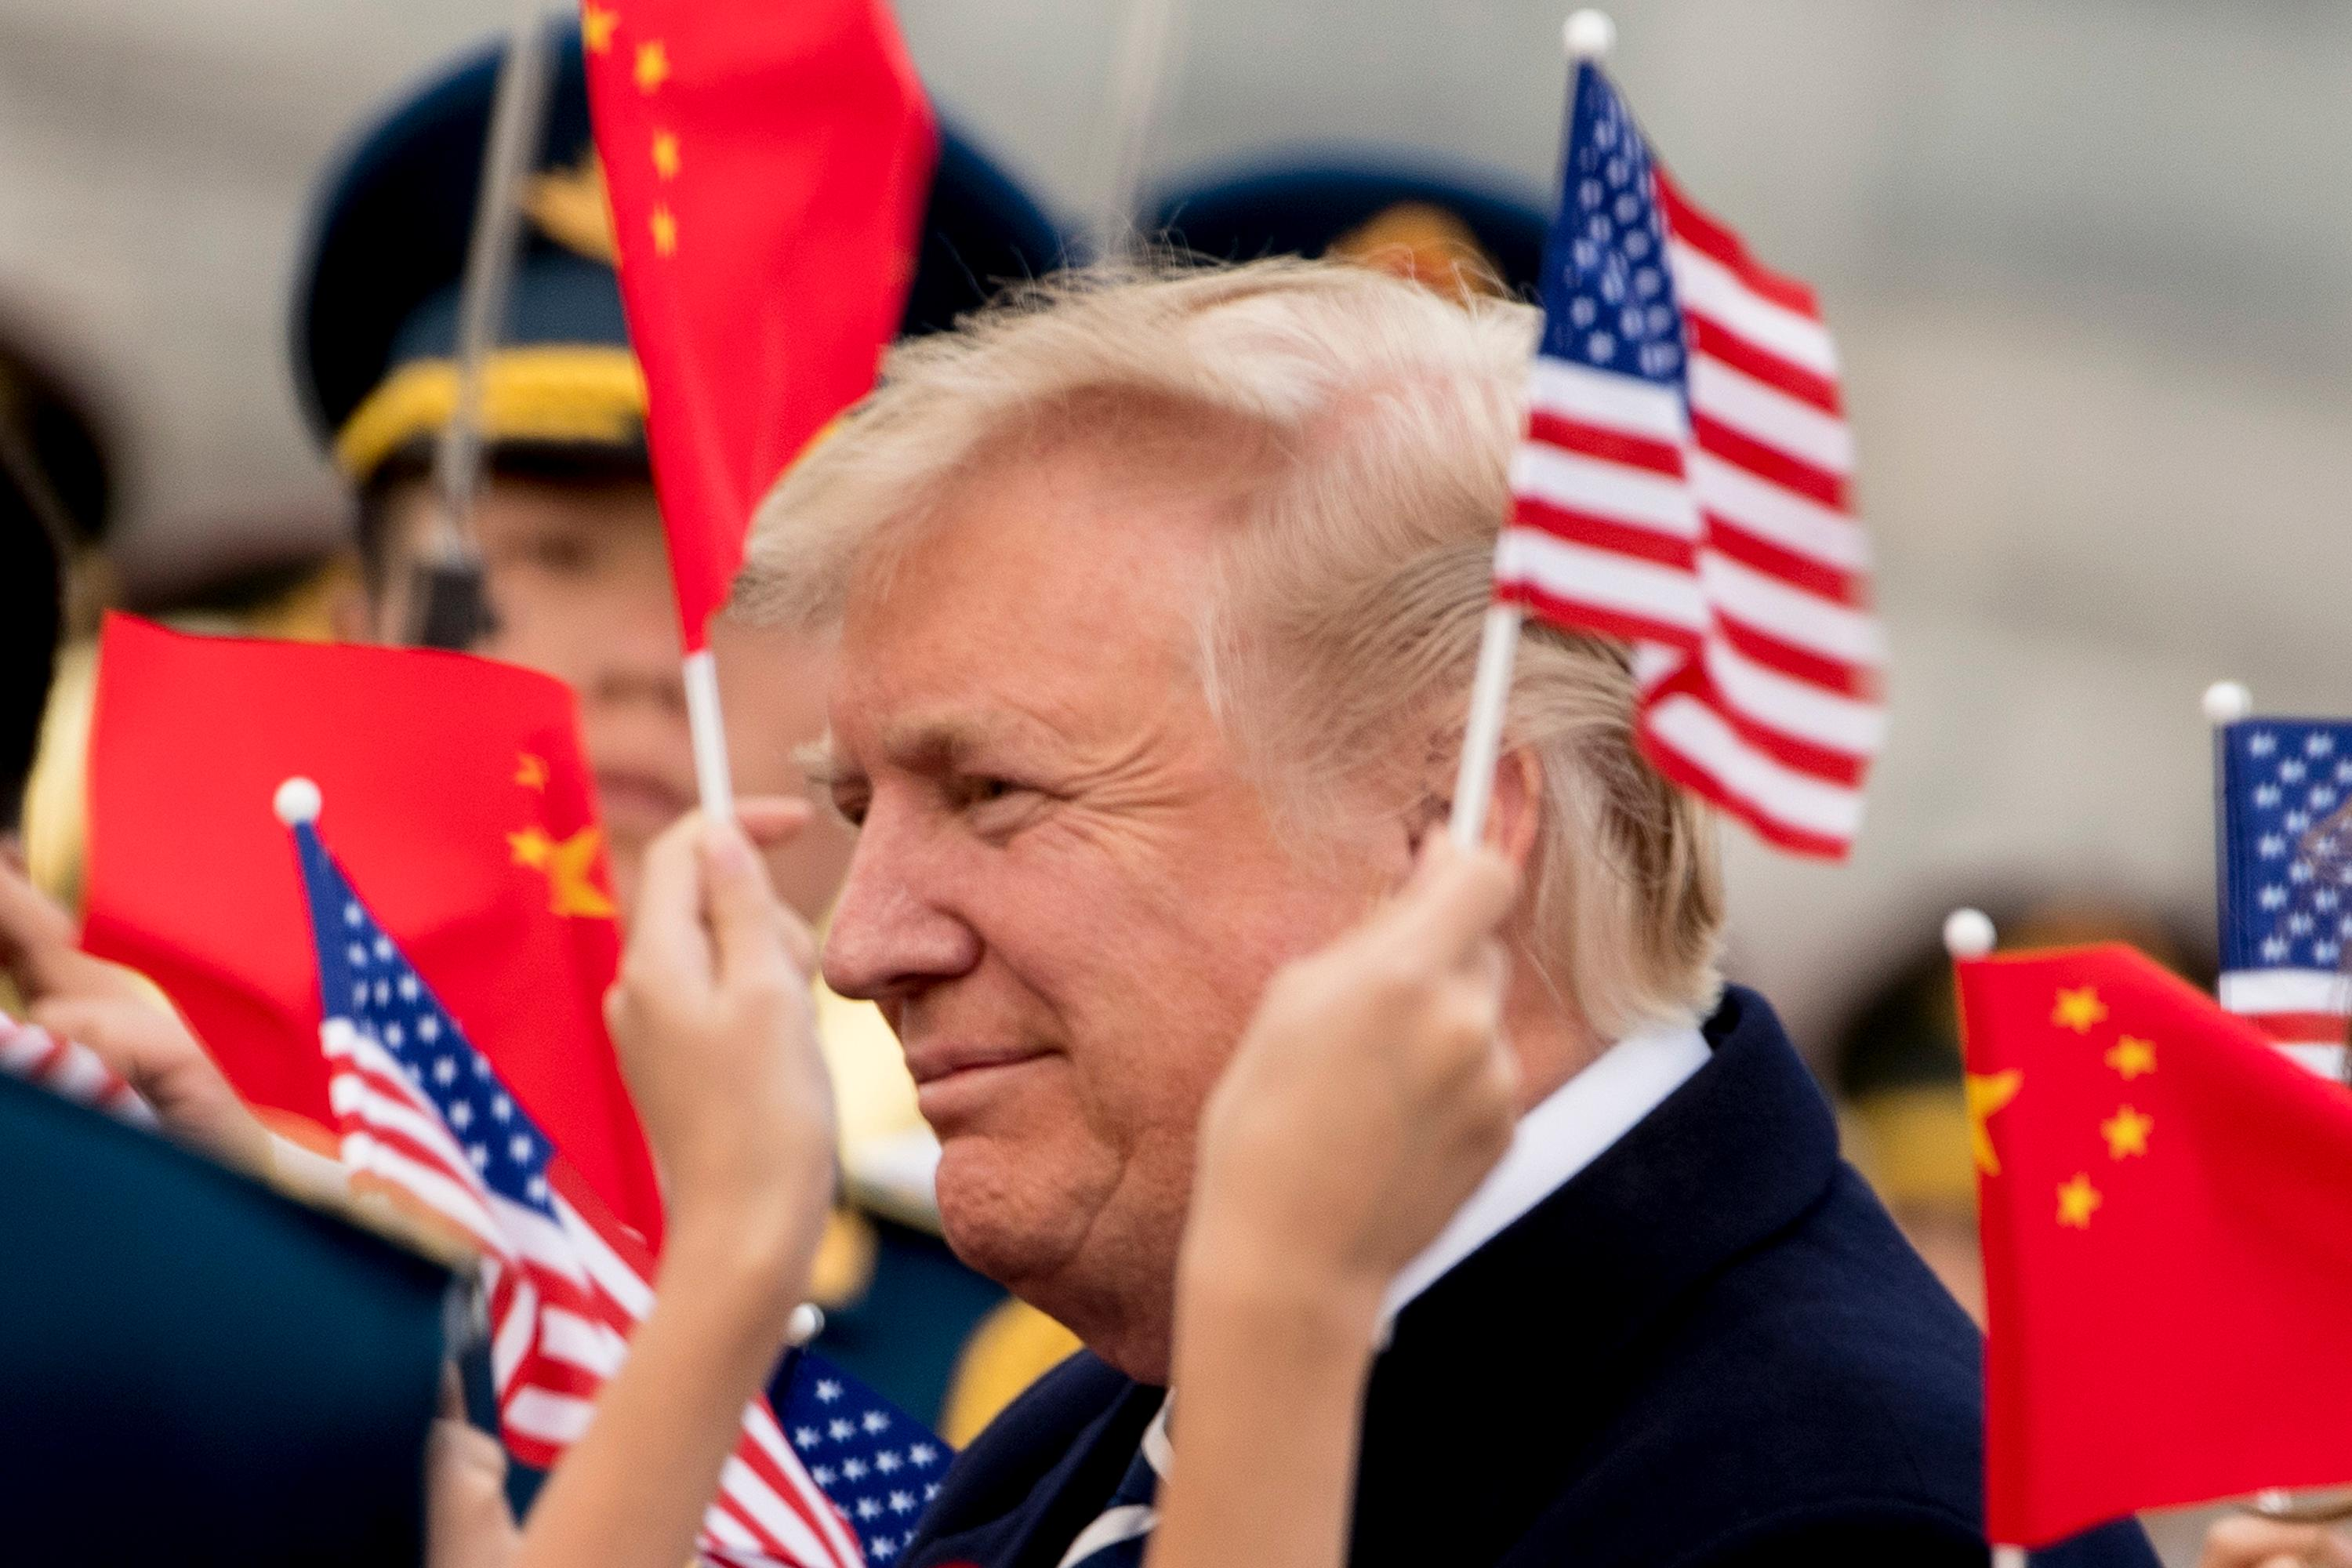 Children wave U.S. and Chinese flags as President Donald Trump arrives at Beijing Airport, Wednesday, Nov. 8, 2017, in Beijing, China.(AP Photo/Andrew Harnik)<p></p>